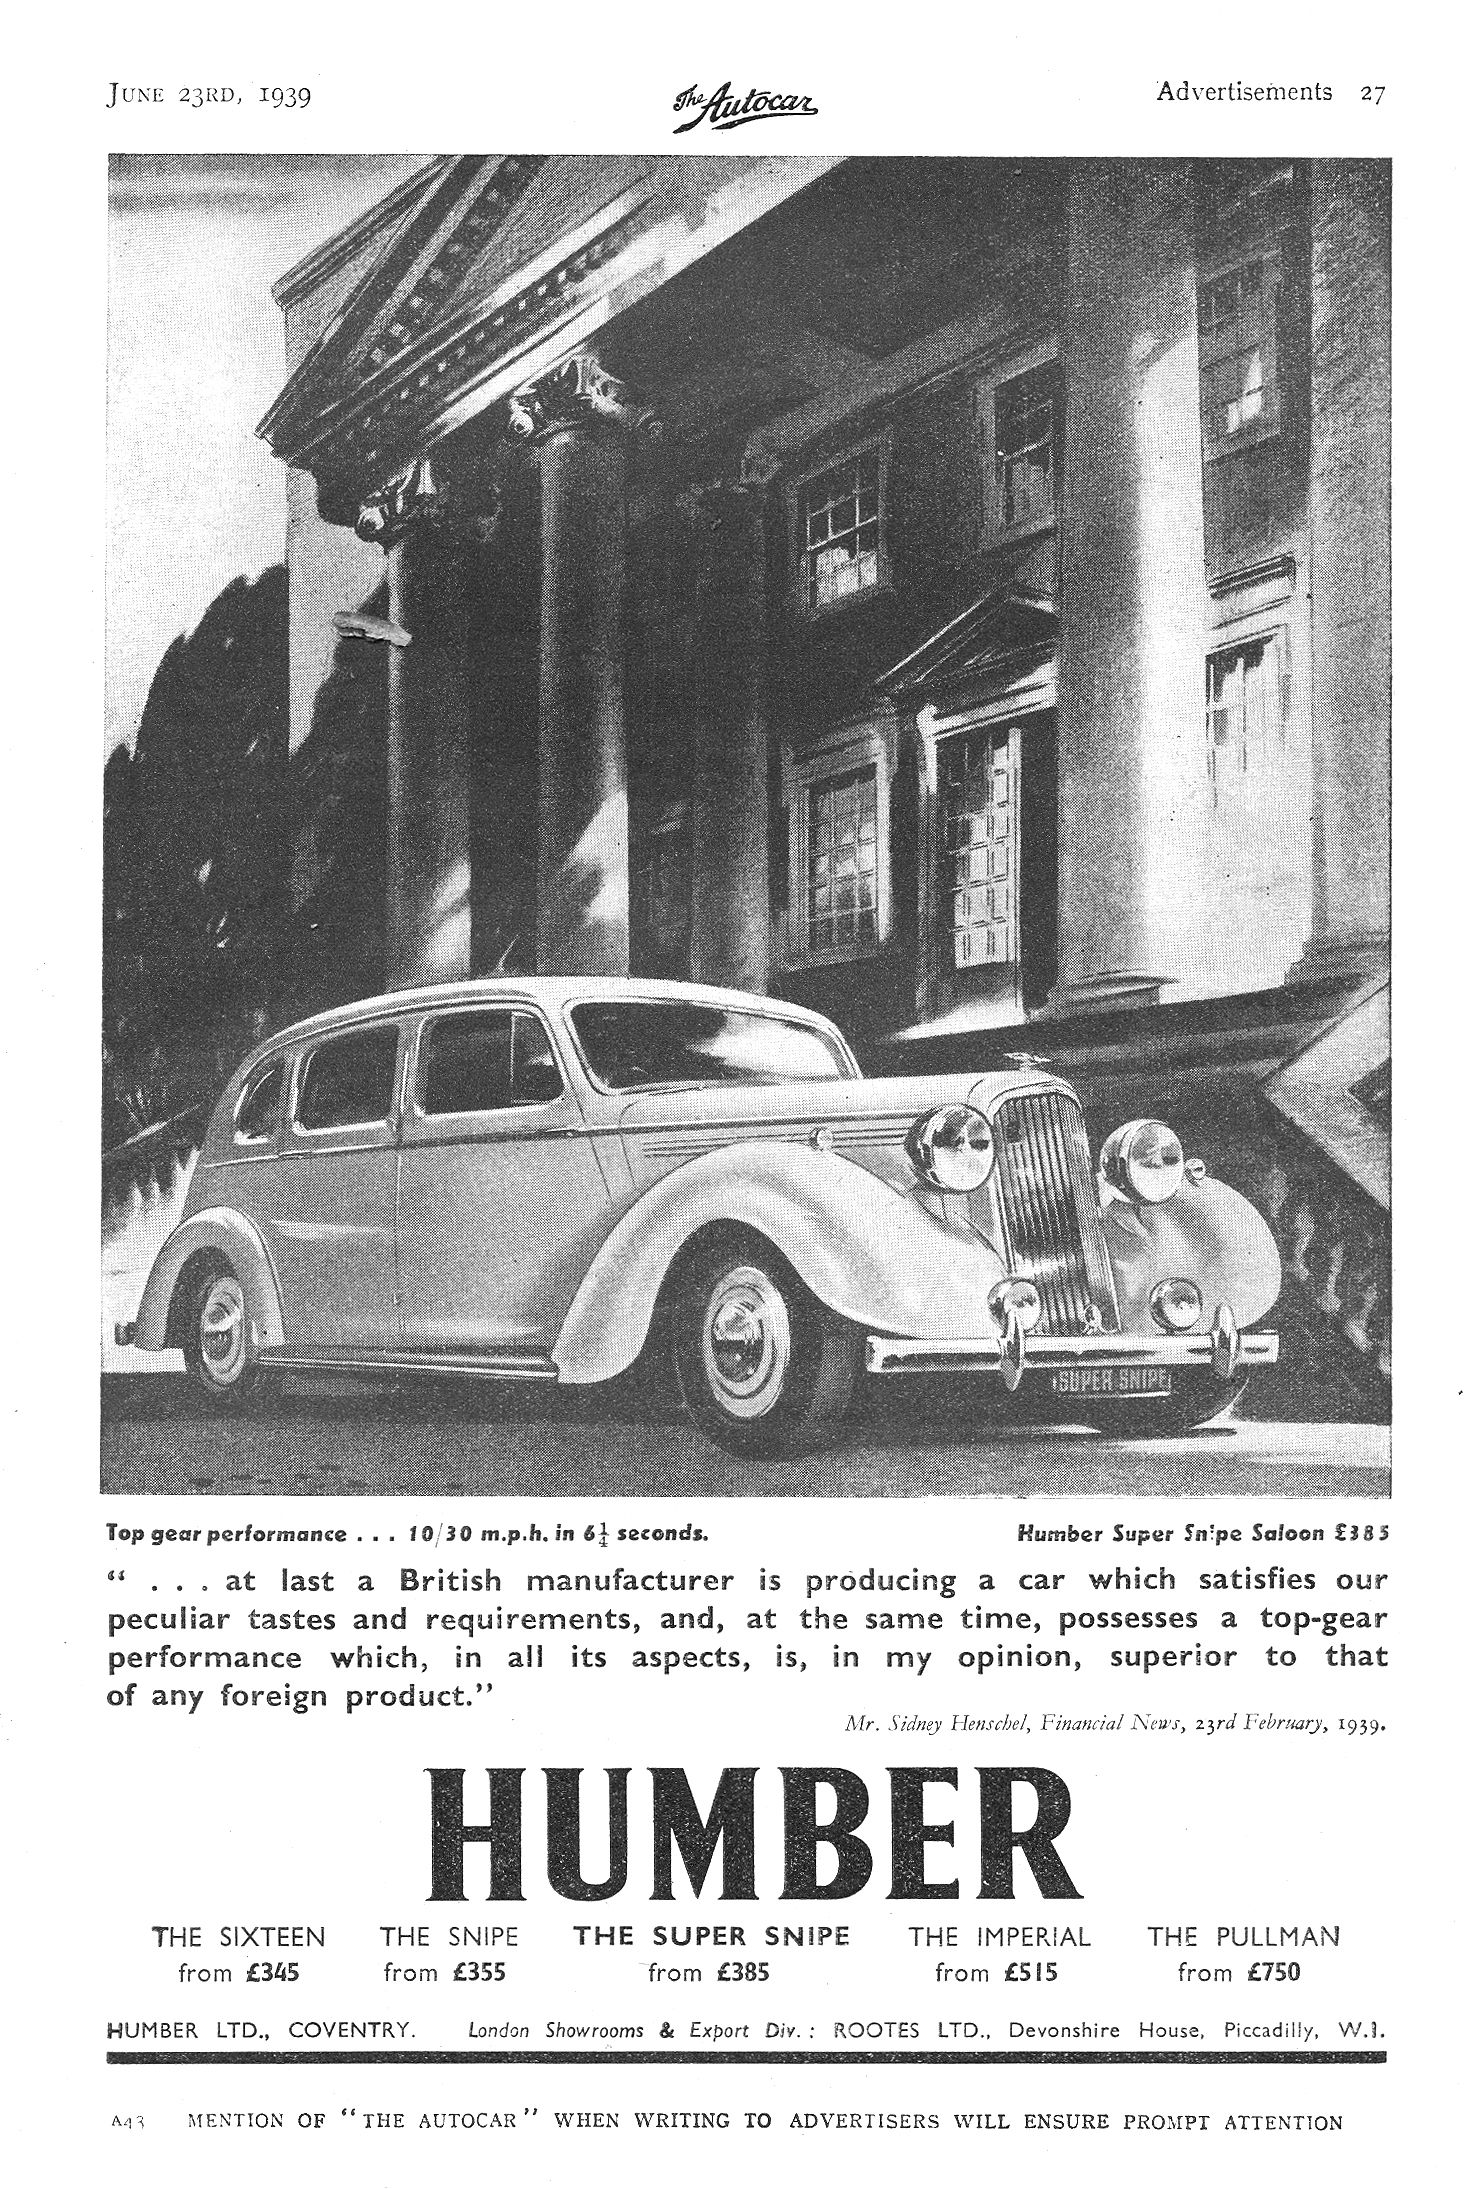 Humber Super Snipe Autocar Motor Advert 1939 Euro Cars Cars